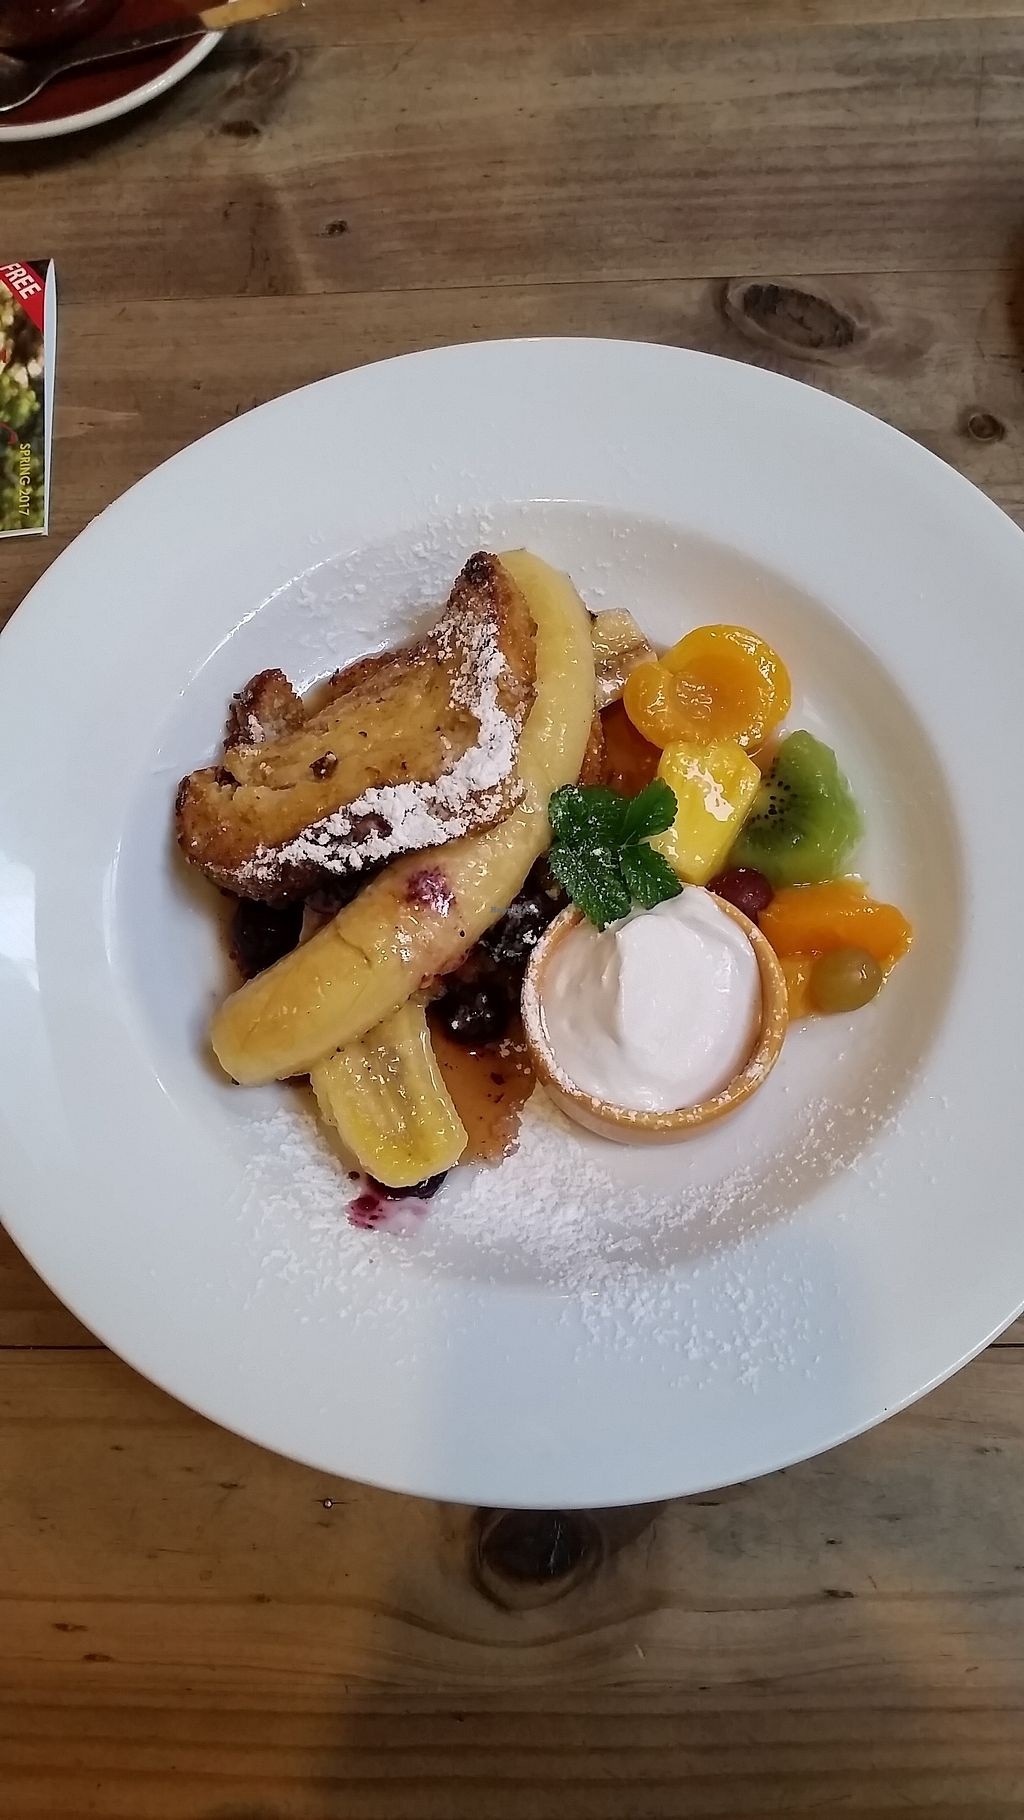 """Photo of Whispers Cafe  by <a href=""""/members/profile/AndyTheVWDude"""">AndyTheVWDude</a> <br/>Vegan French Toast with Coconut cream - Yum! <br/> October 3, 2017  - <a href='/contact/abuse/image/74234/311490'>Report</a>"""